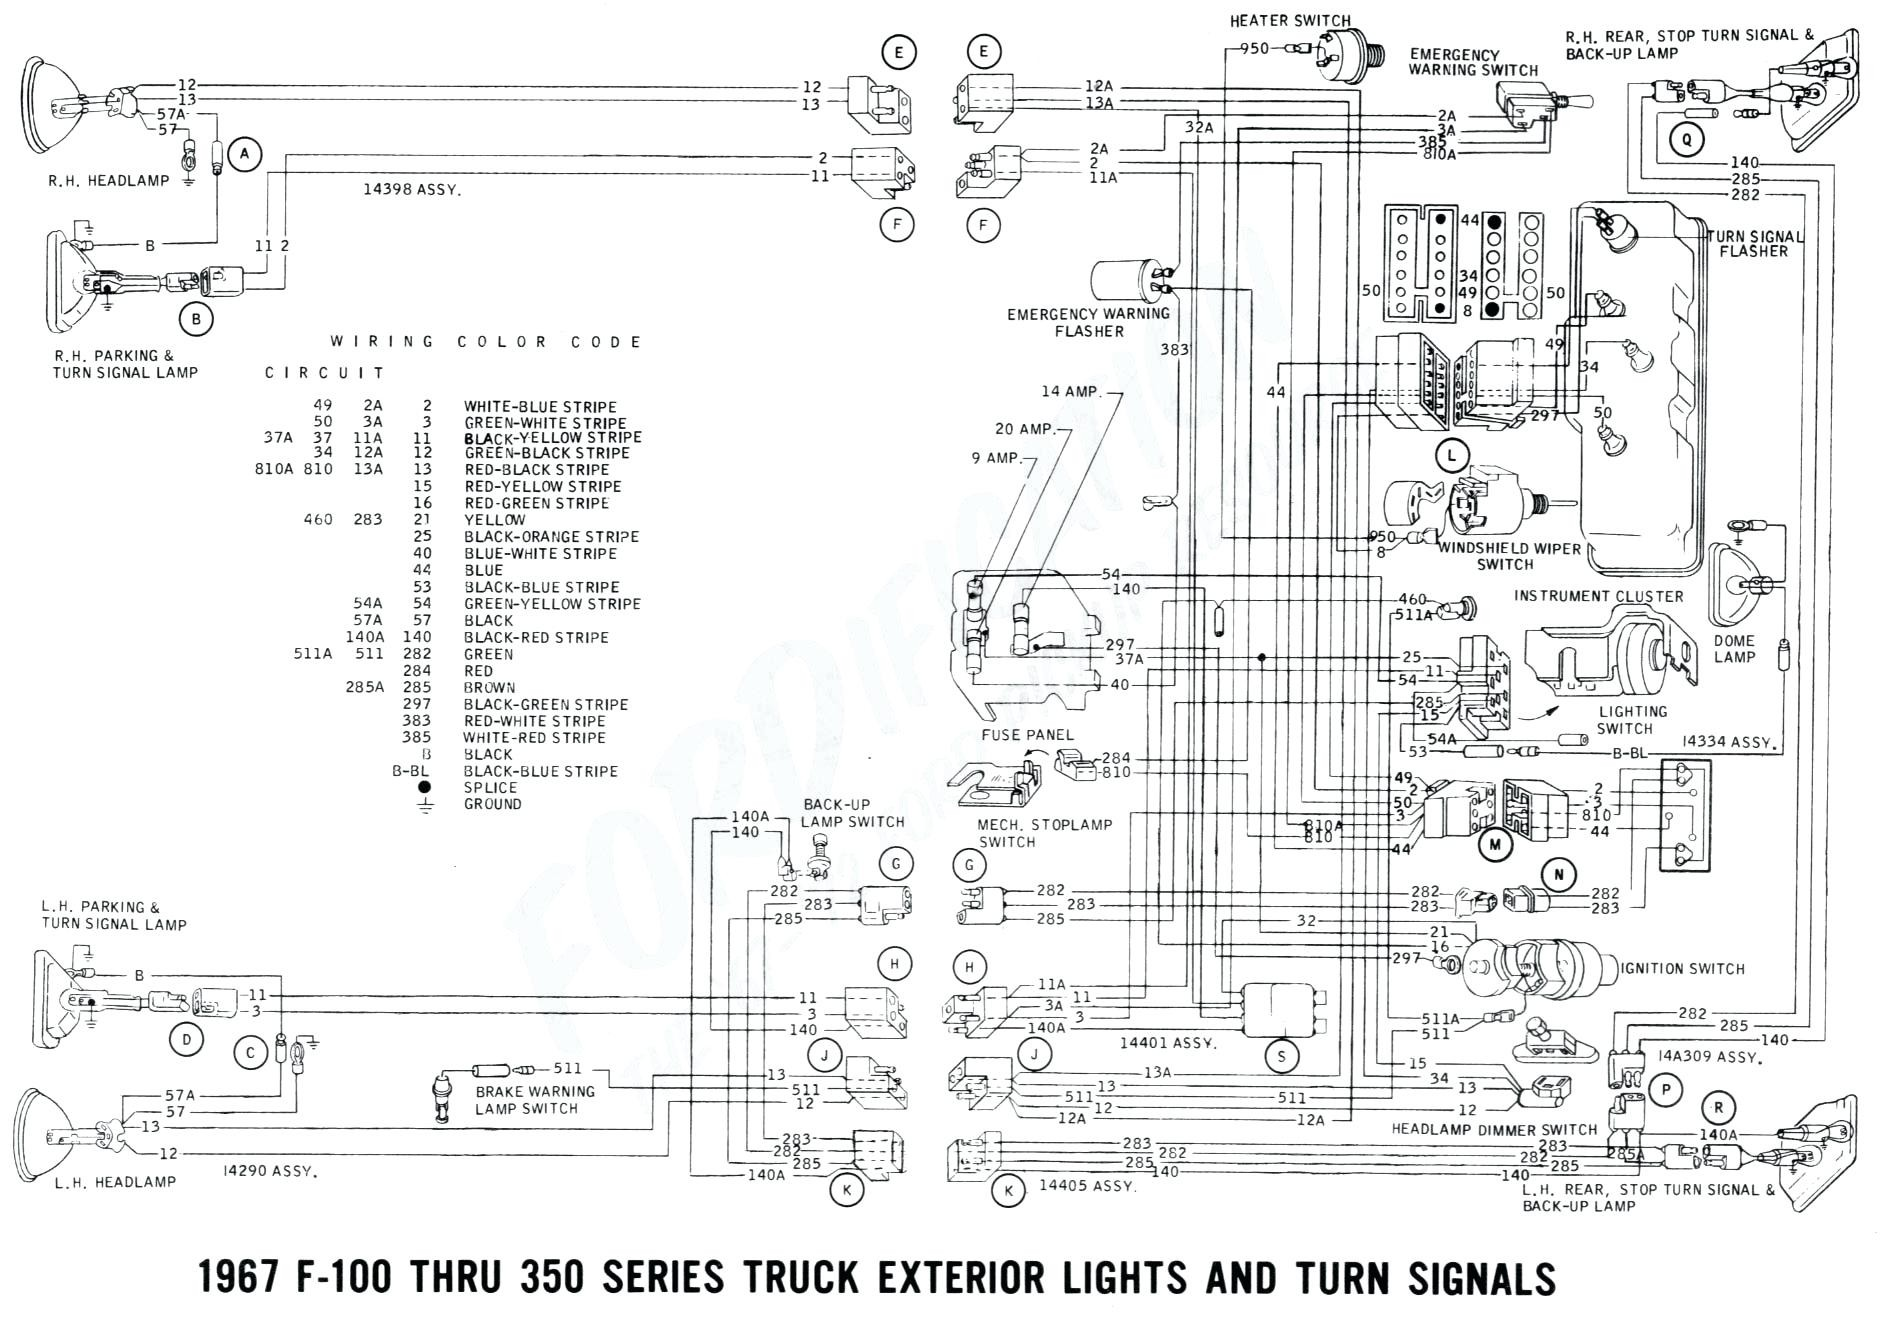 Full Size of Low Voltage Outdoor Lighting Wiring Diagram Ford Truck Technical Drawings And Schematics Section